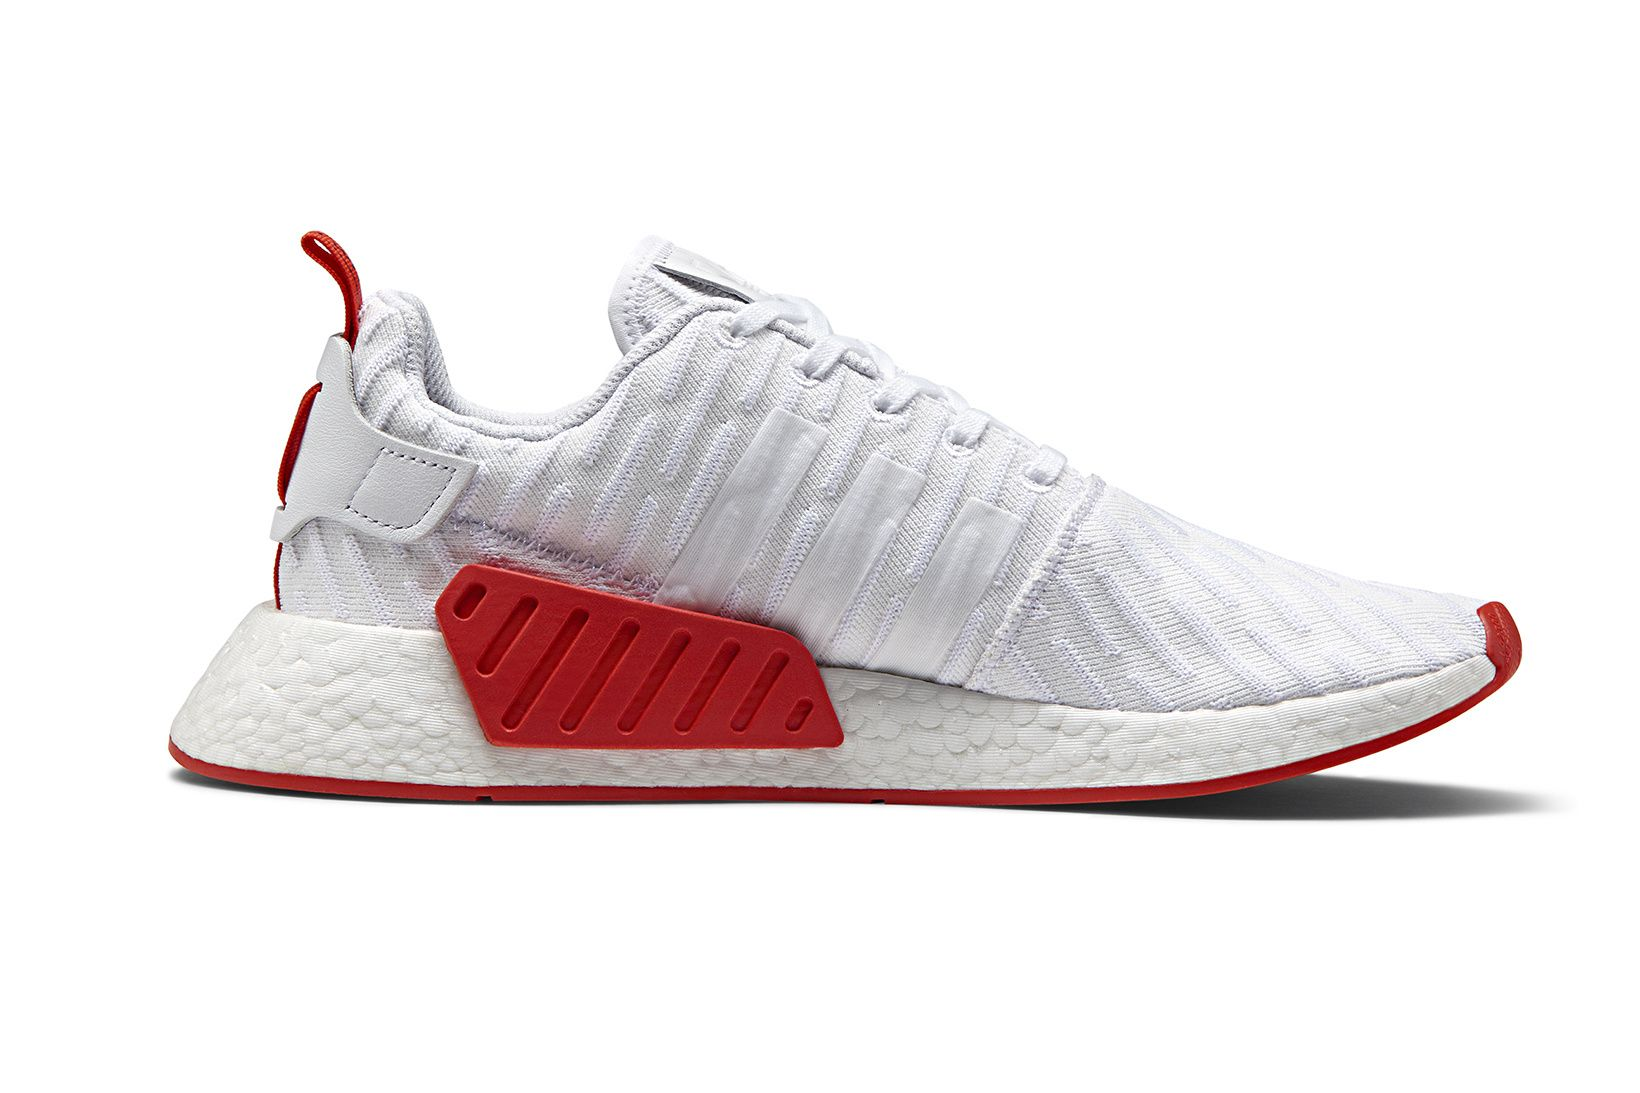 The Adidas Nmd R2 In An Understated White And Red Colorway Arrives